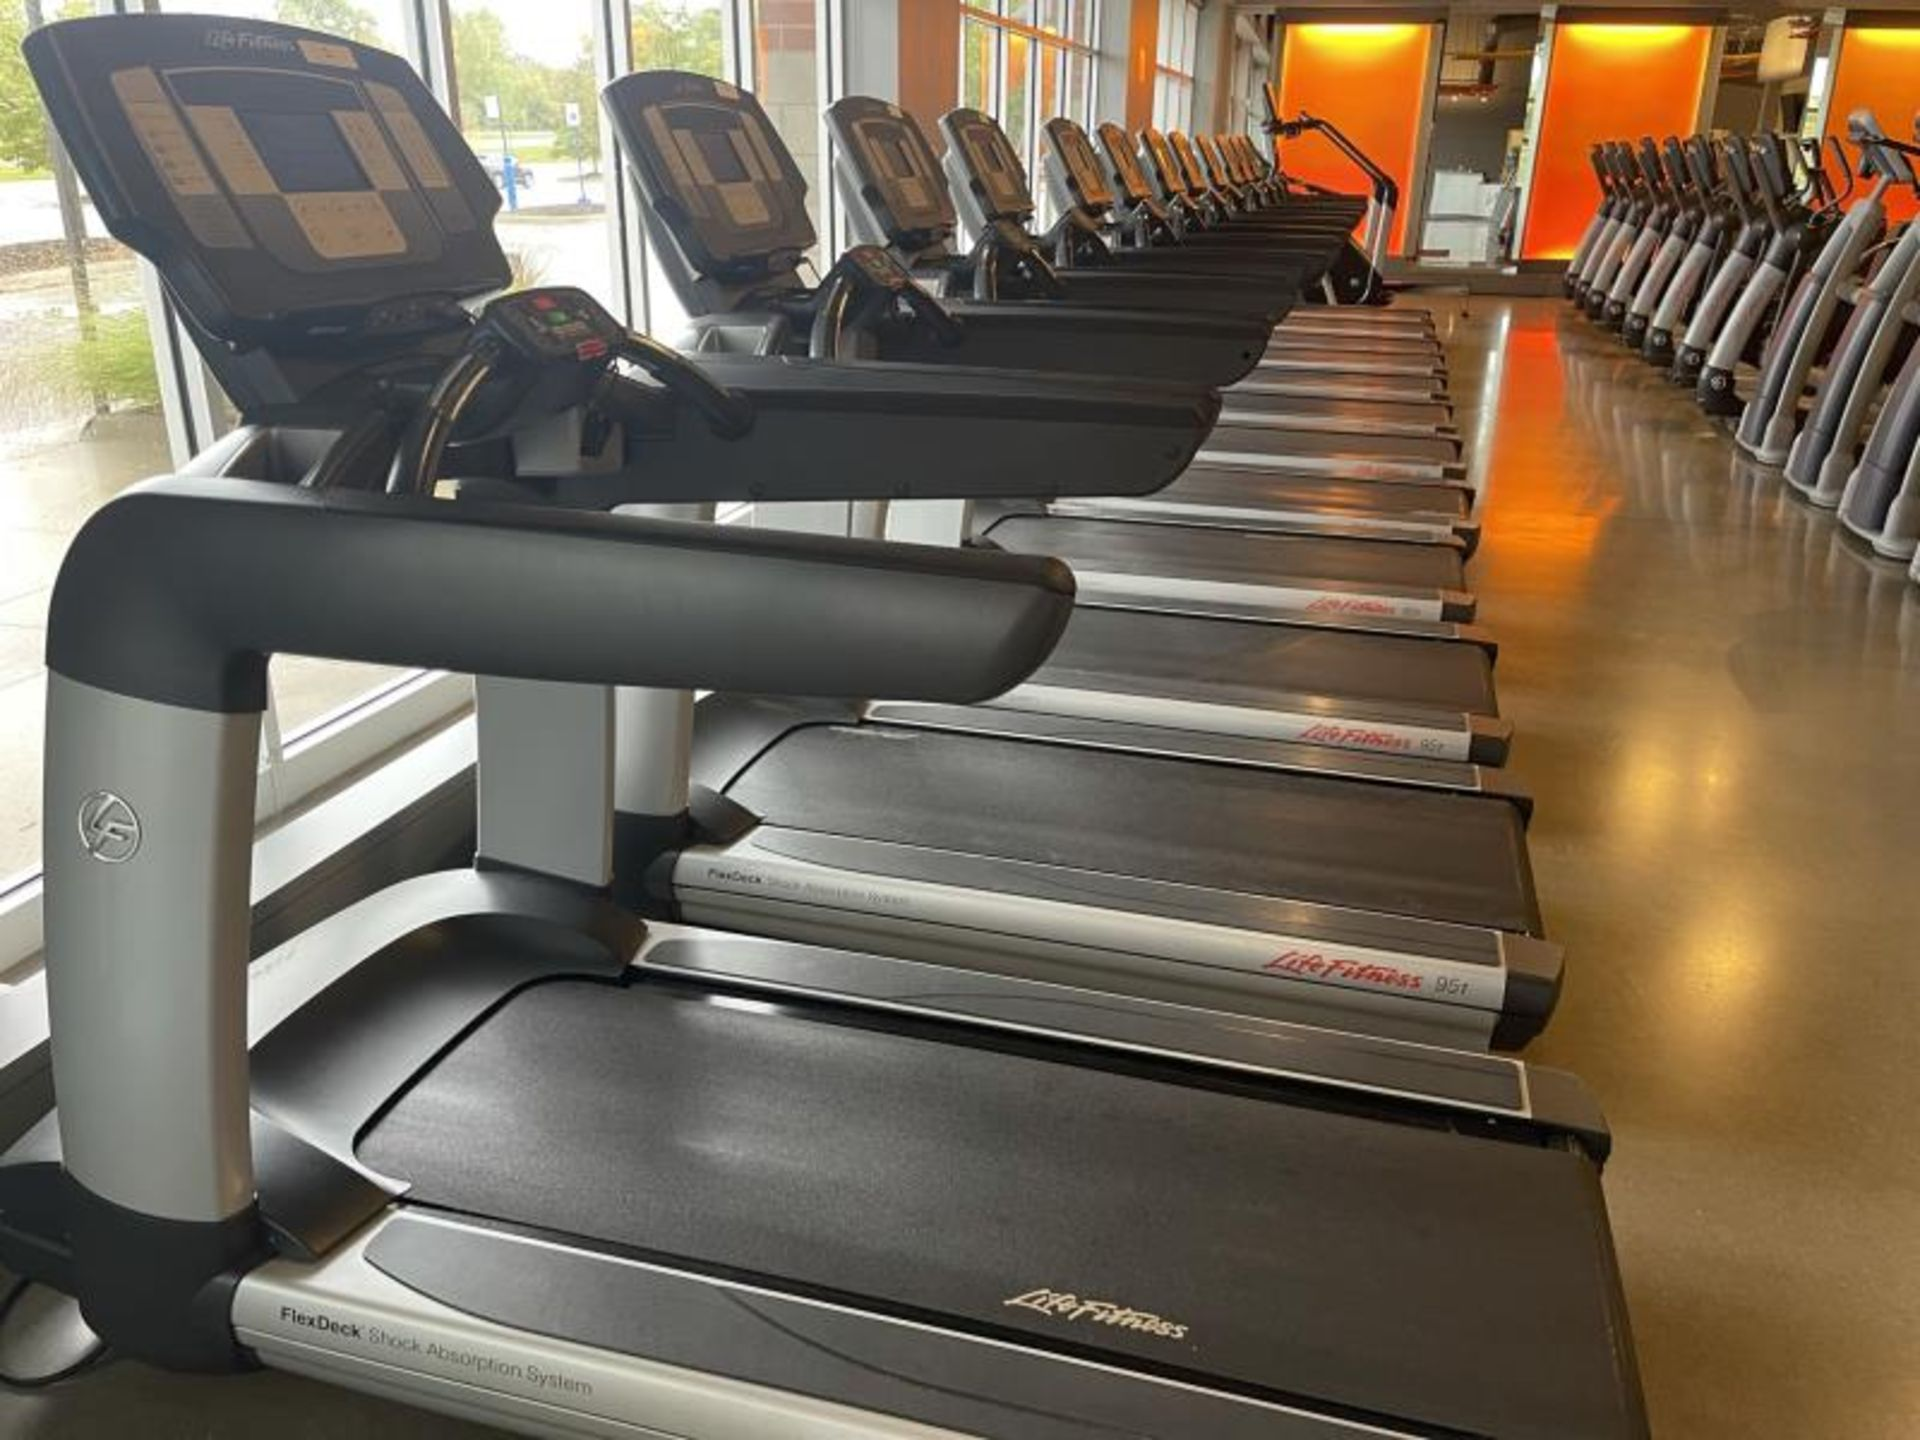 Life Fitness Treadmill M: 95T with Flex Deck, Shock Absorption System SN: TET107106 - Image 3 of 3